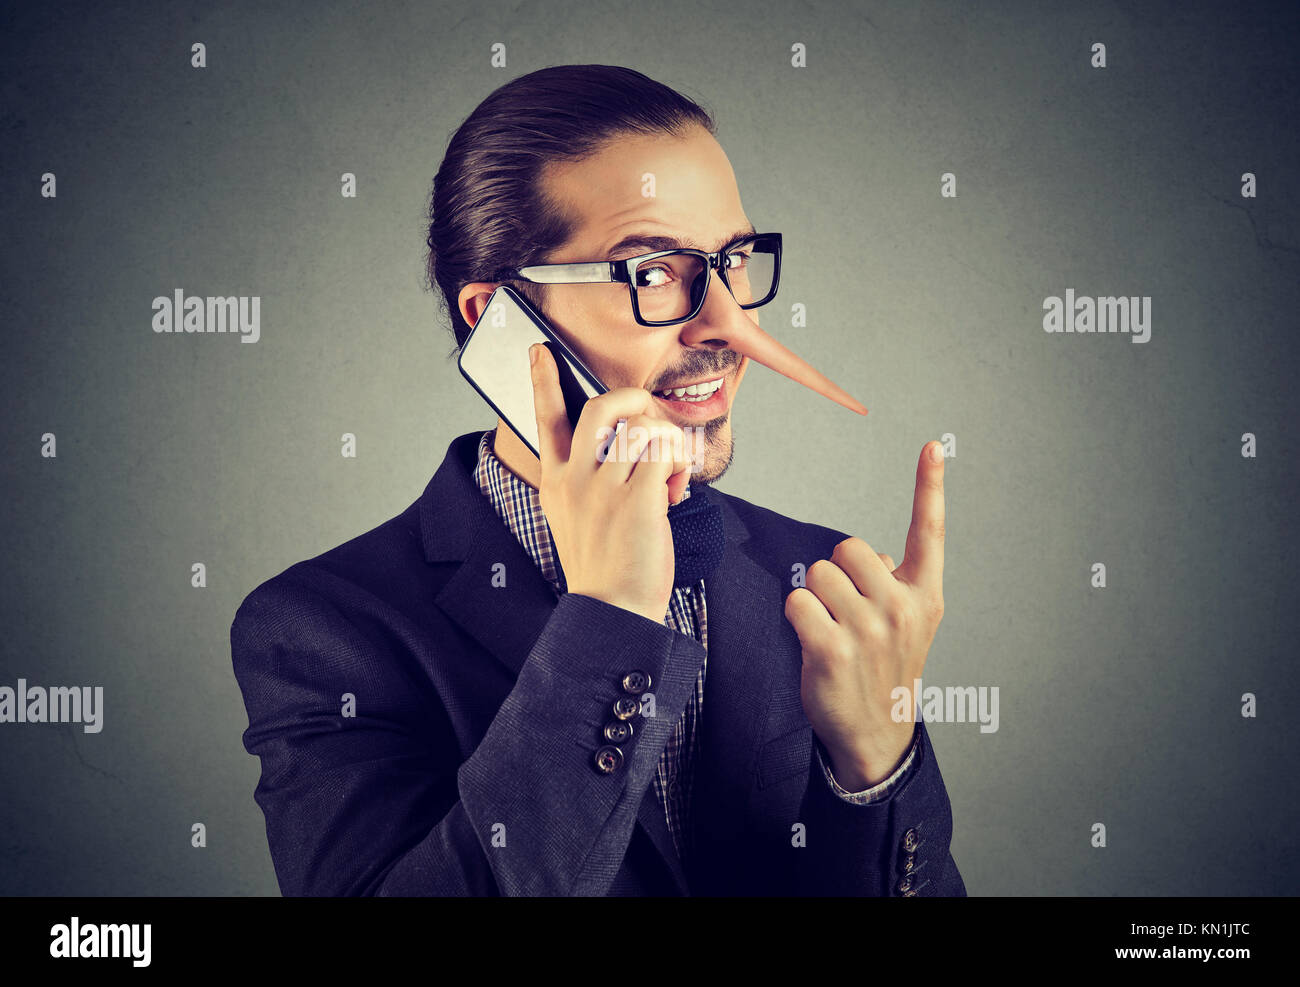 Sly liar business man with long nose talking on mobile phone isolated on gray wall background. - Stock Image